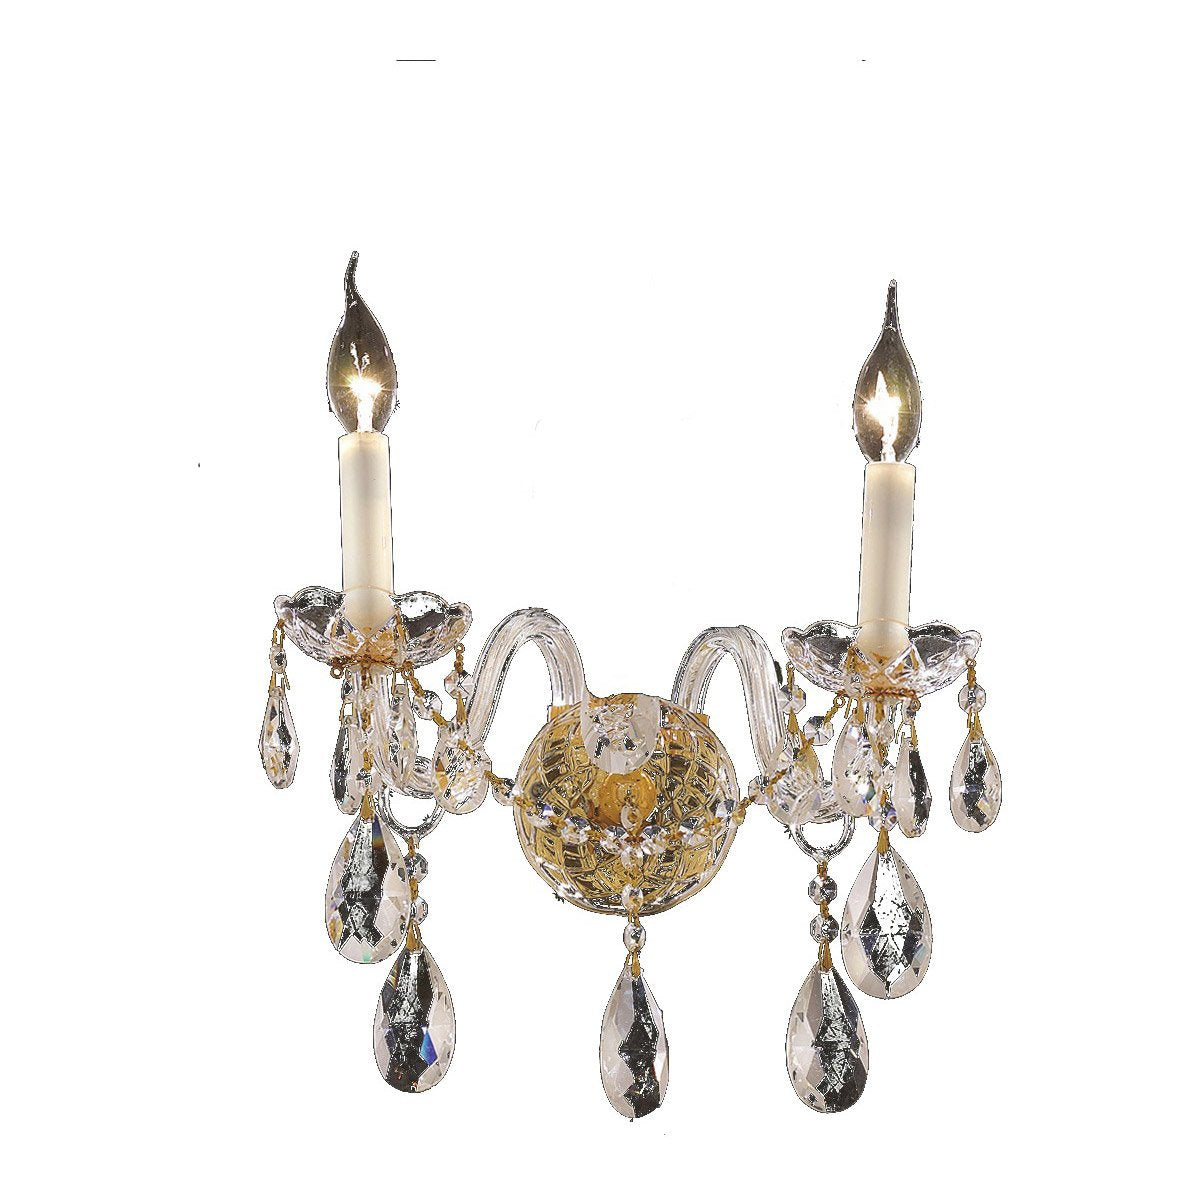 Alexandria 13 Crystal Wall Sconce With 2 Lights - Gold Finish And Elegant Cut Crystal Wall Sconce